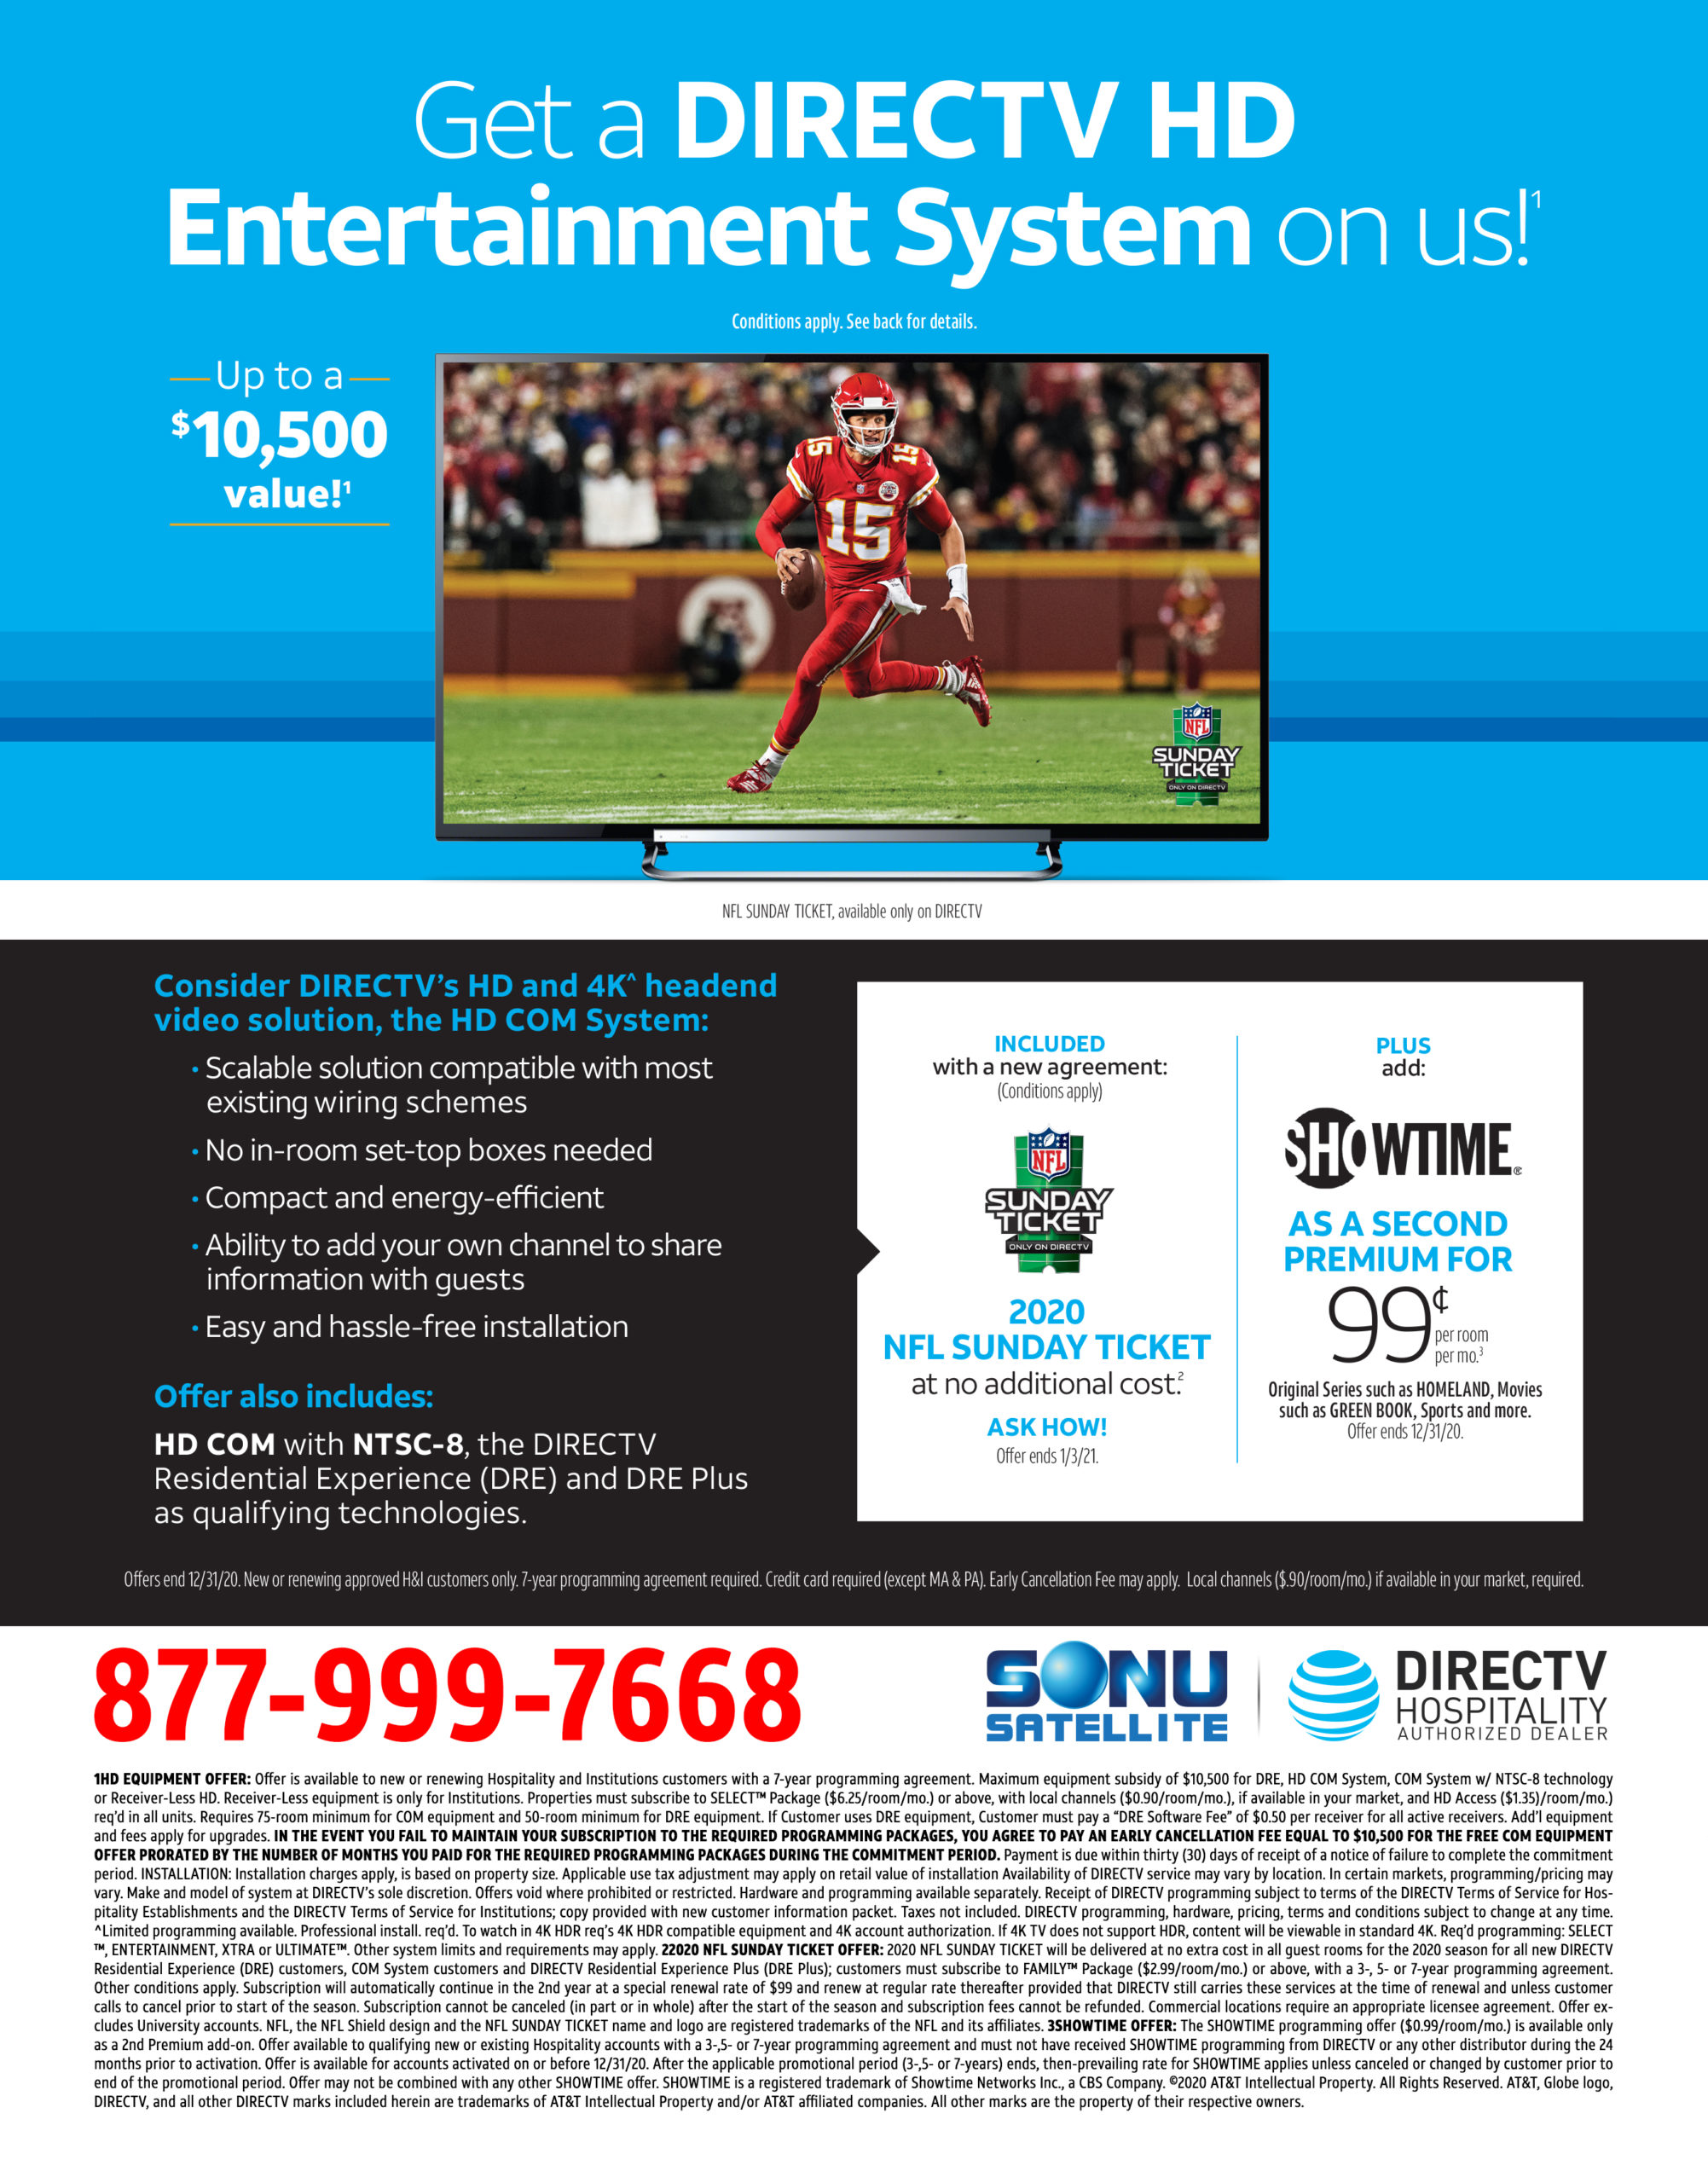 DIRECTV for Hotels 75 Room 2020 Free Equipment Promotion